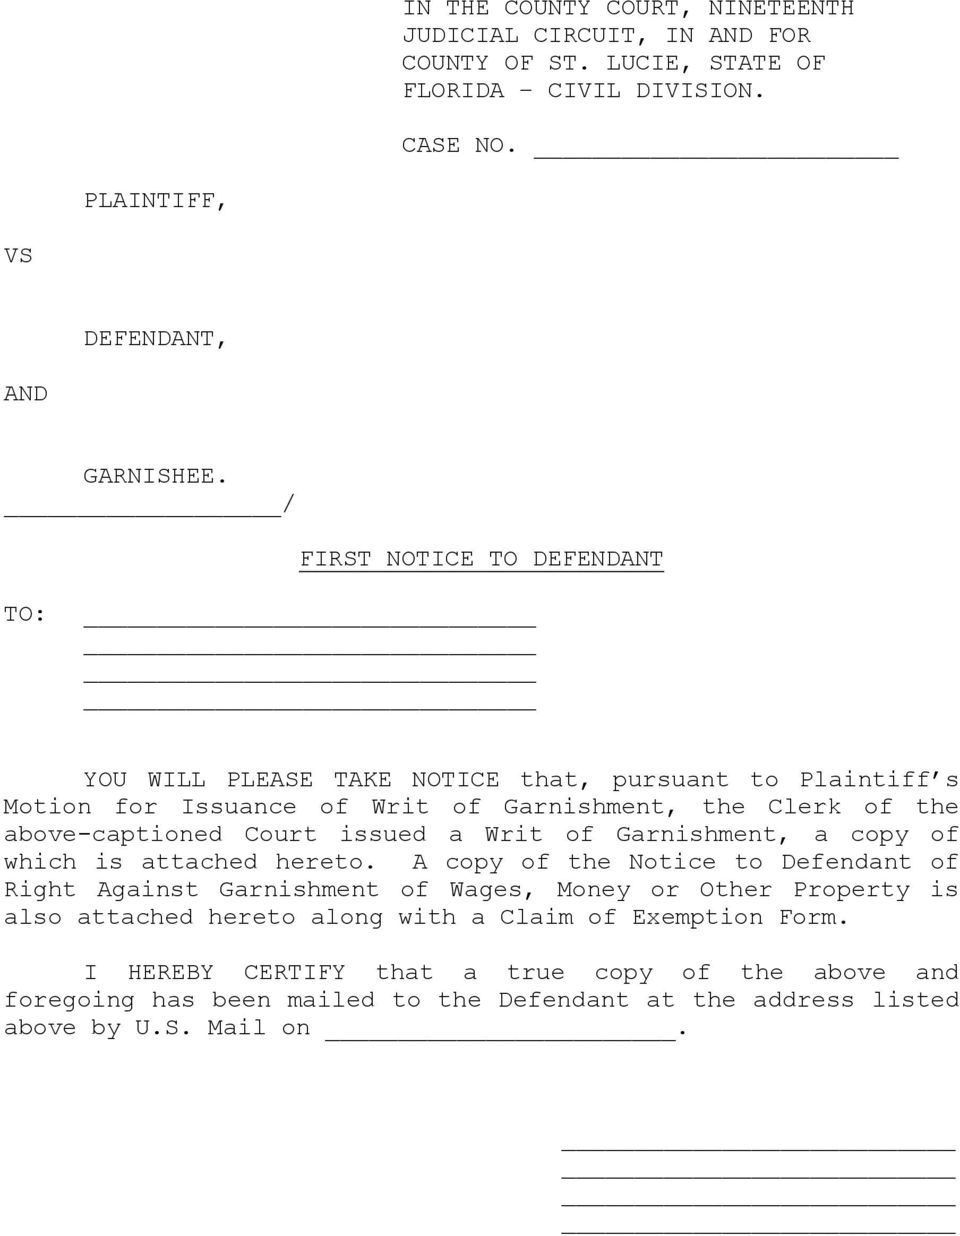 issued a Writ of Garnishment, a copy of which is attached hereto.